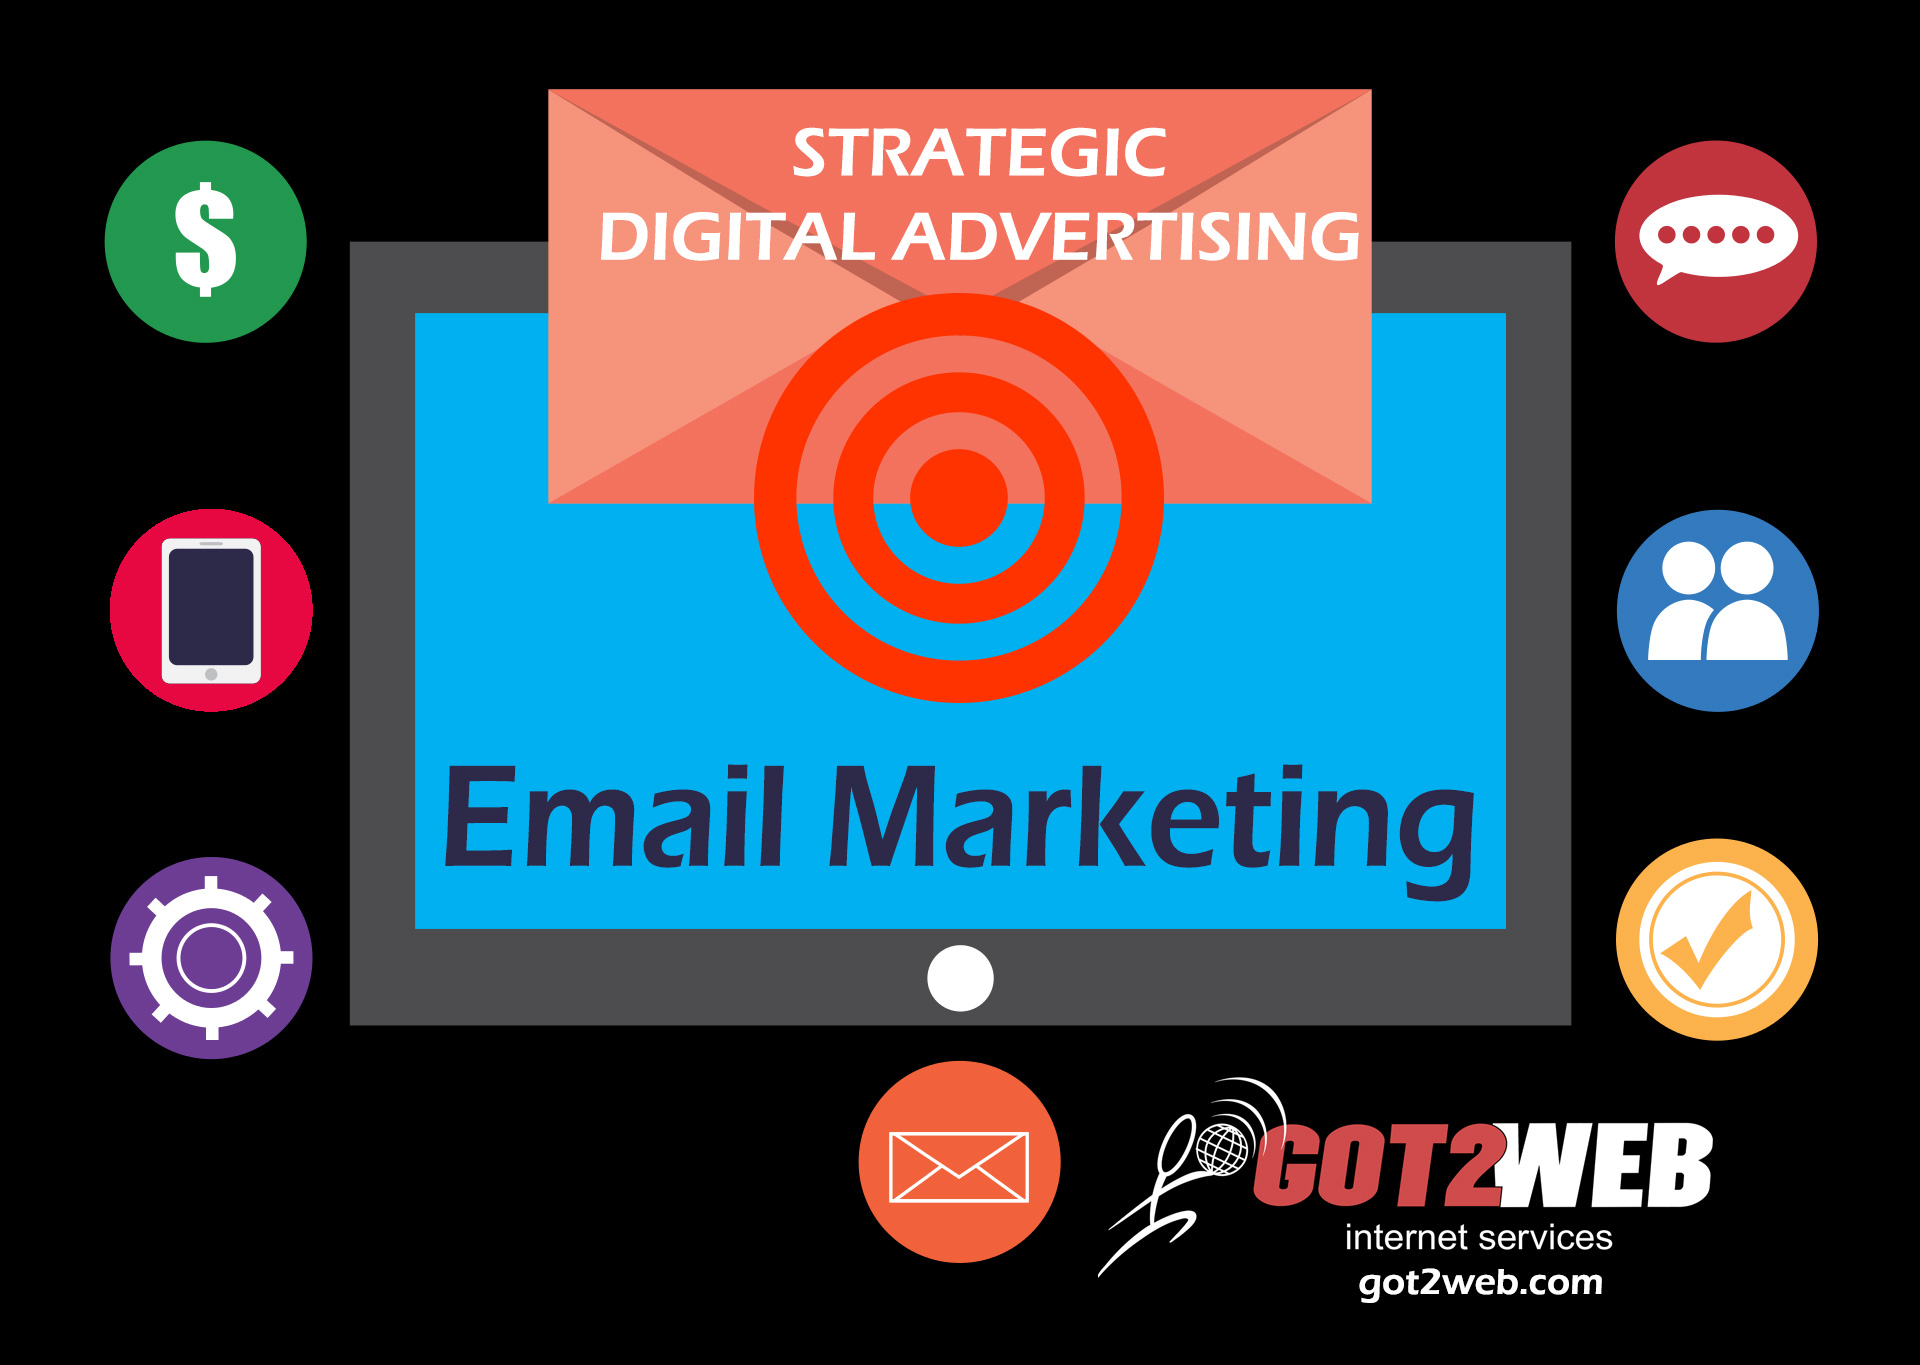 email marketing got2web.com